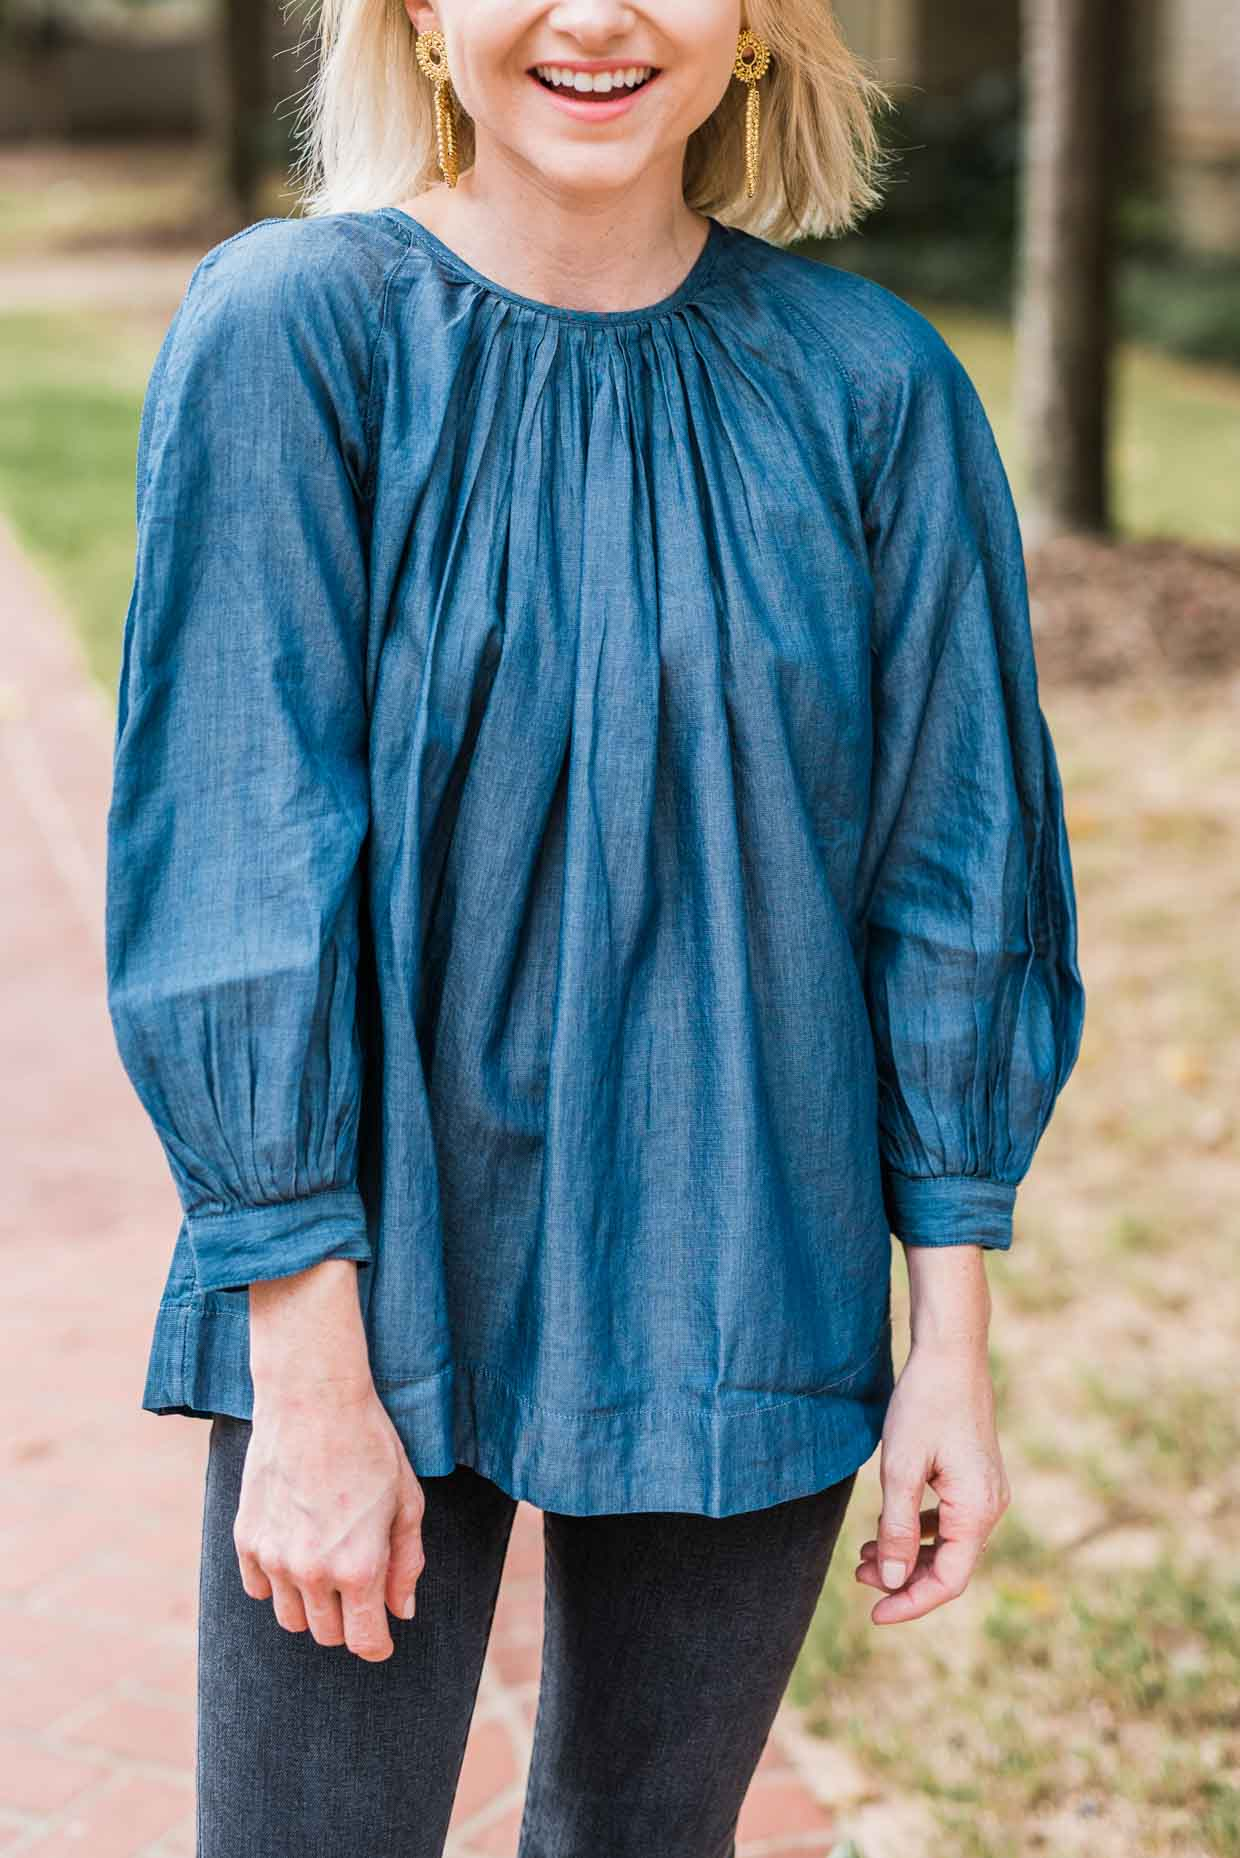 Madewell Chambray Tie Back Top - Poor Little It Girl